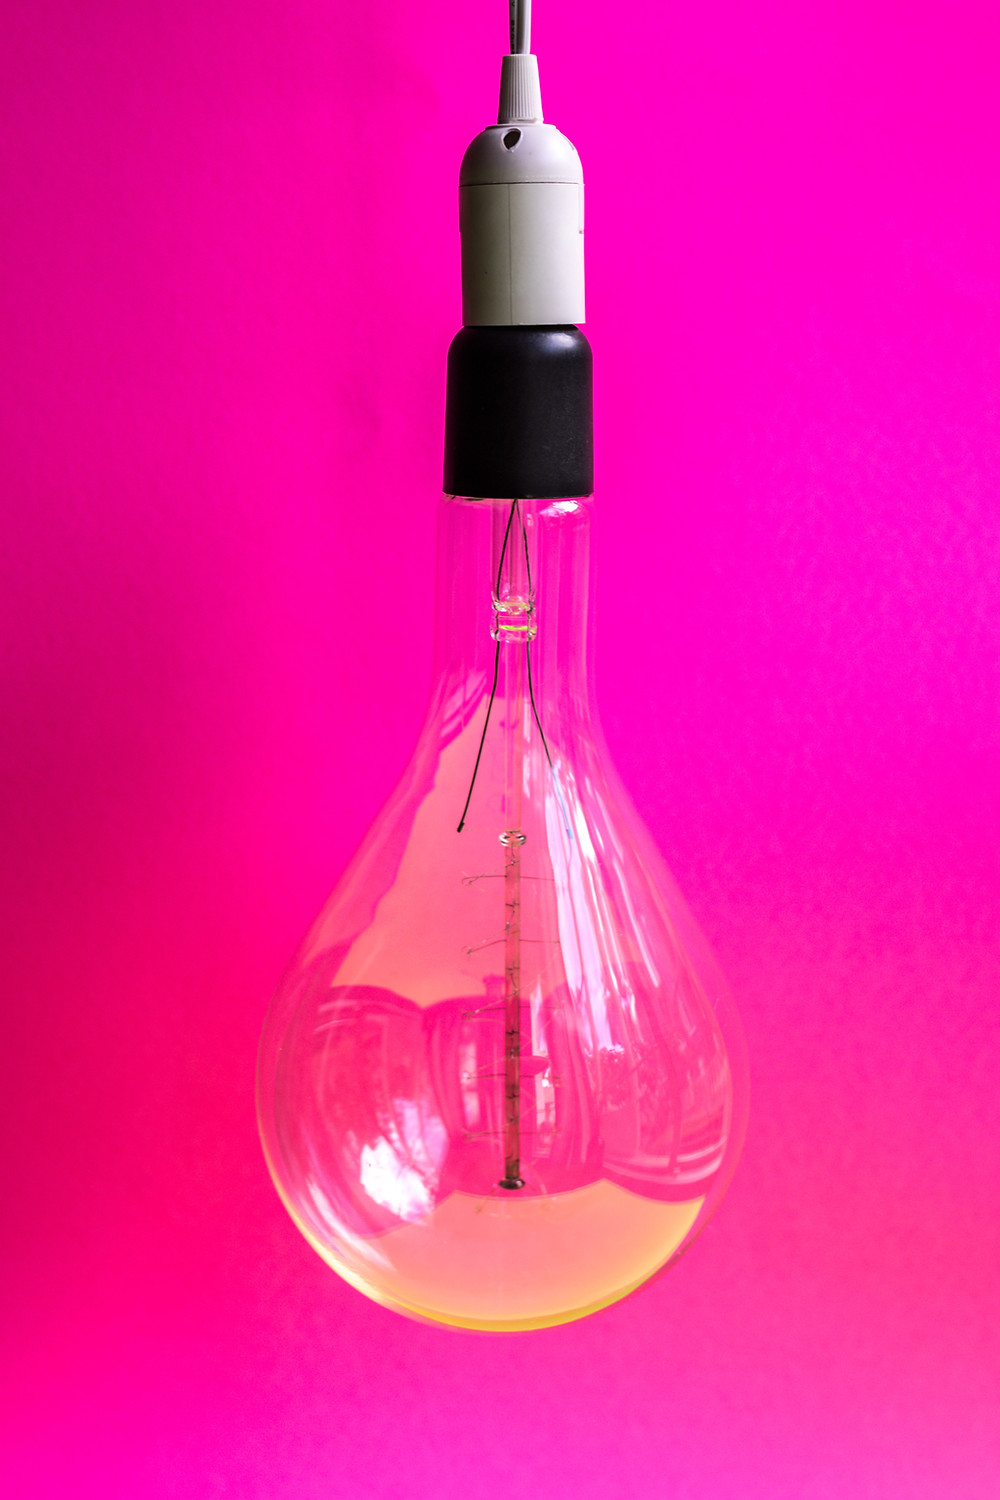 Lightbulb: A Dyslexic Invention